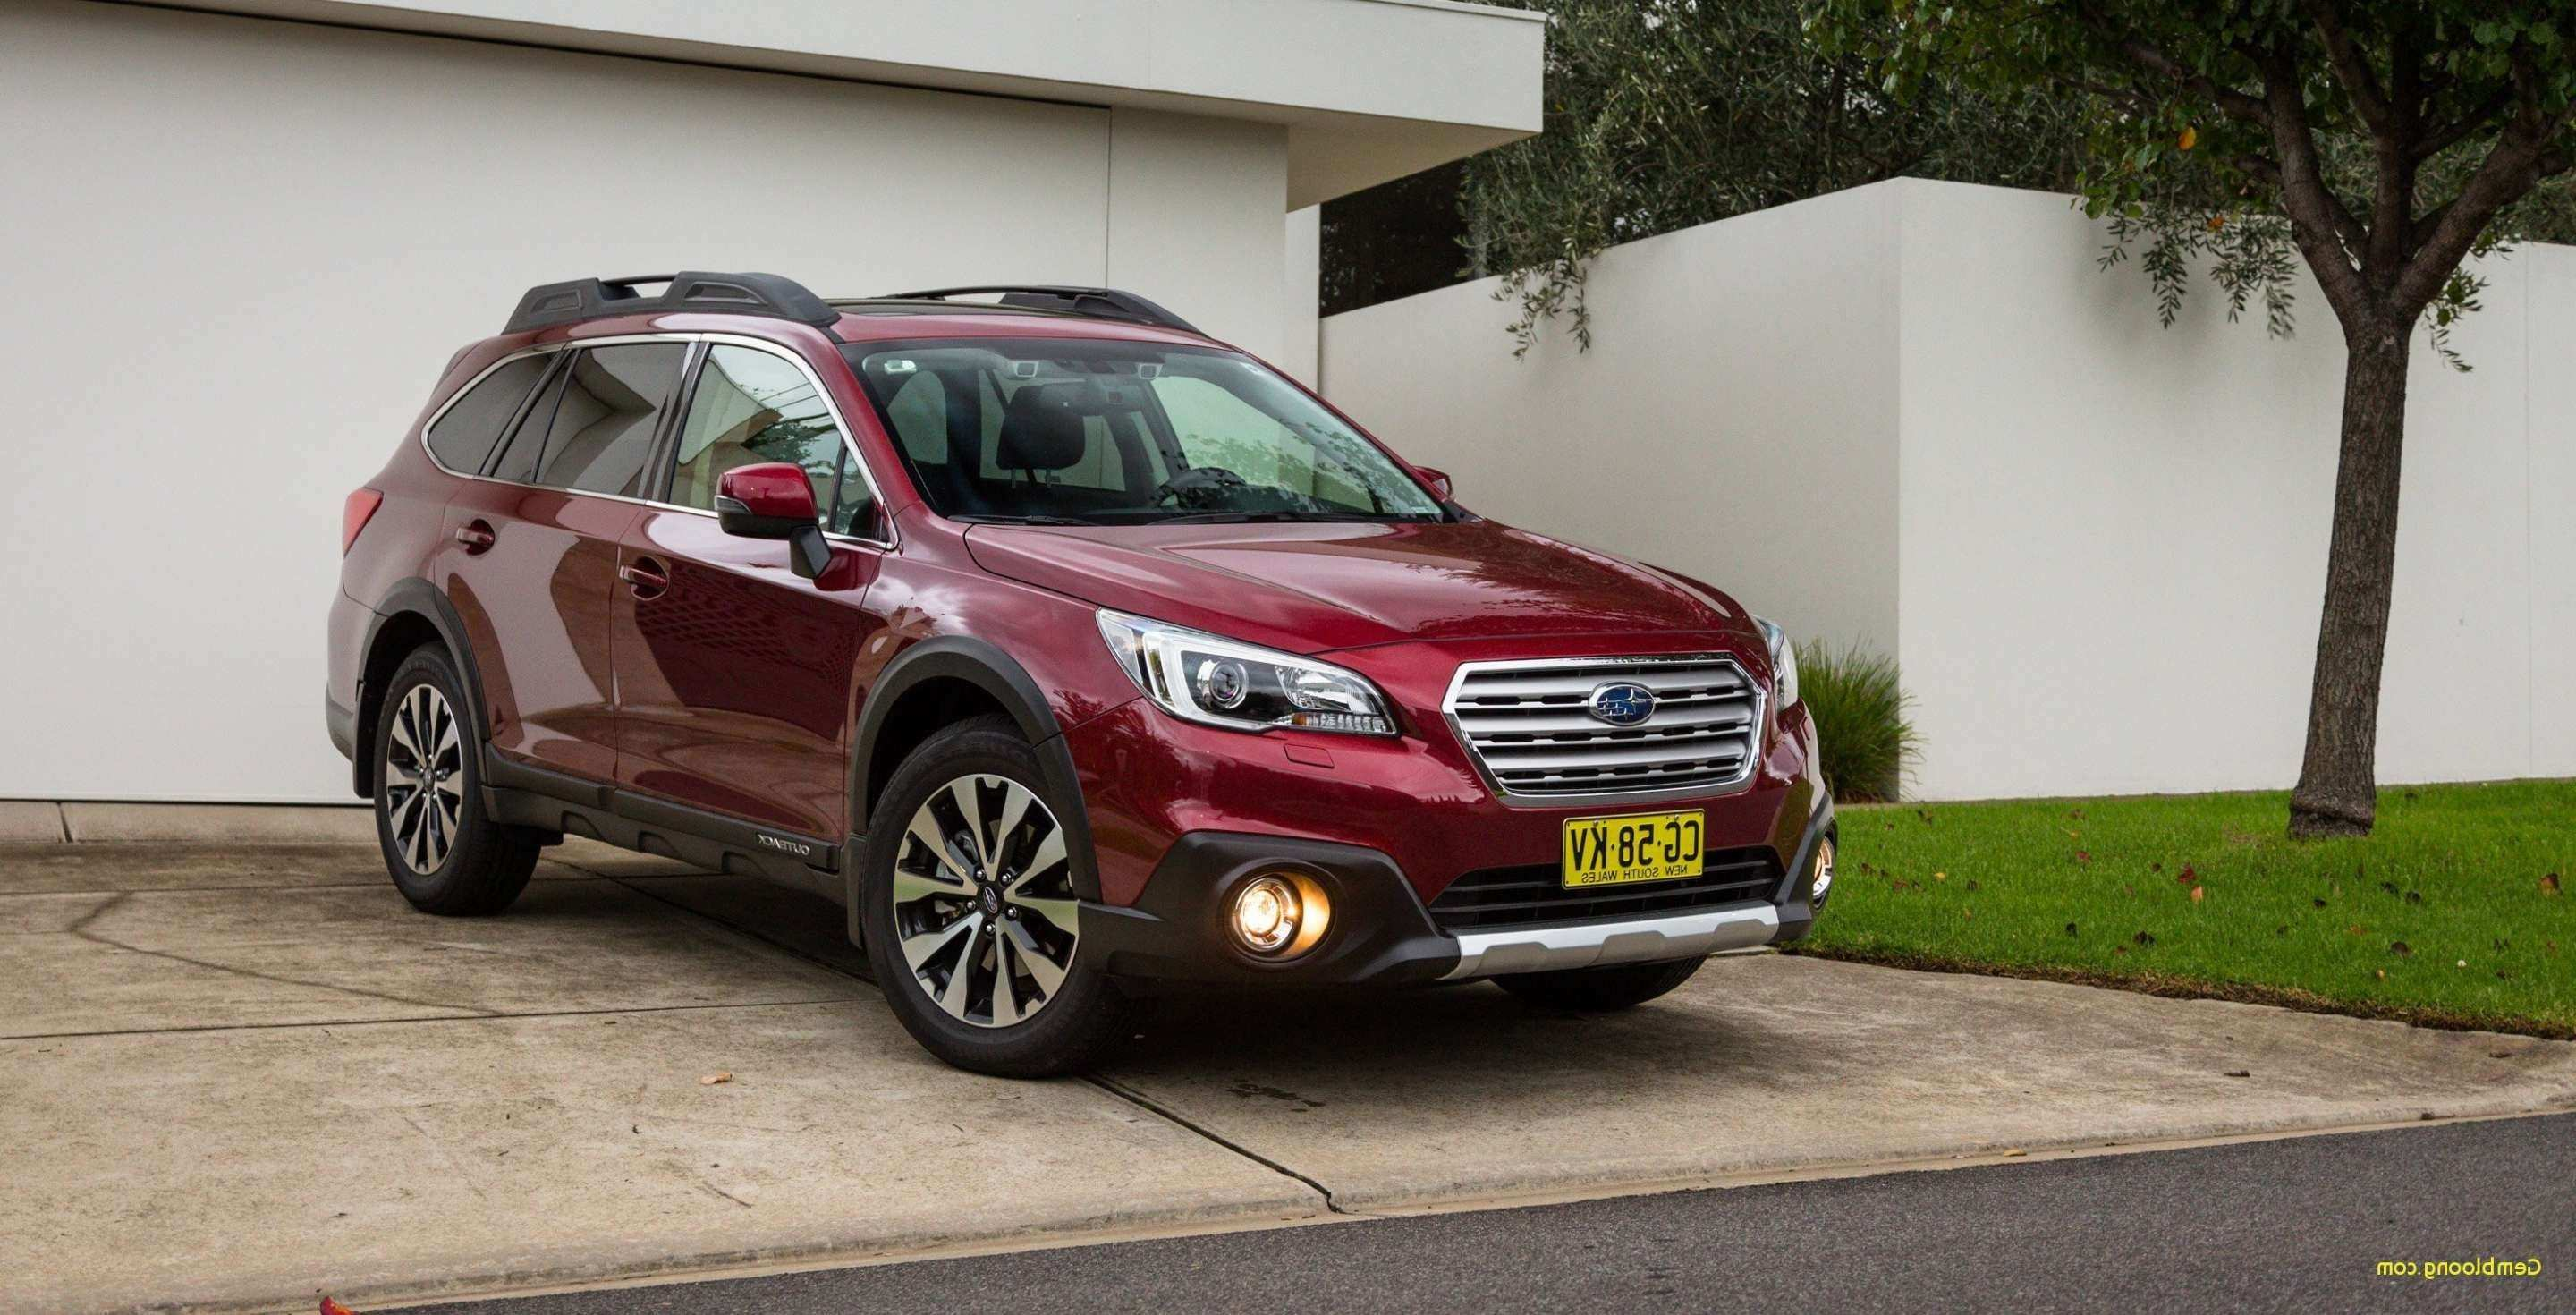 51 Gallery of Subaru Outback 2020 Uk Picture for Subaru Outback 2020 Uk